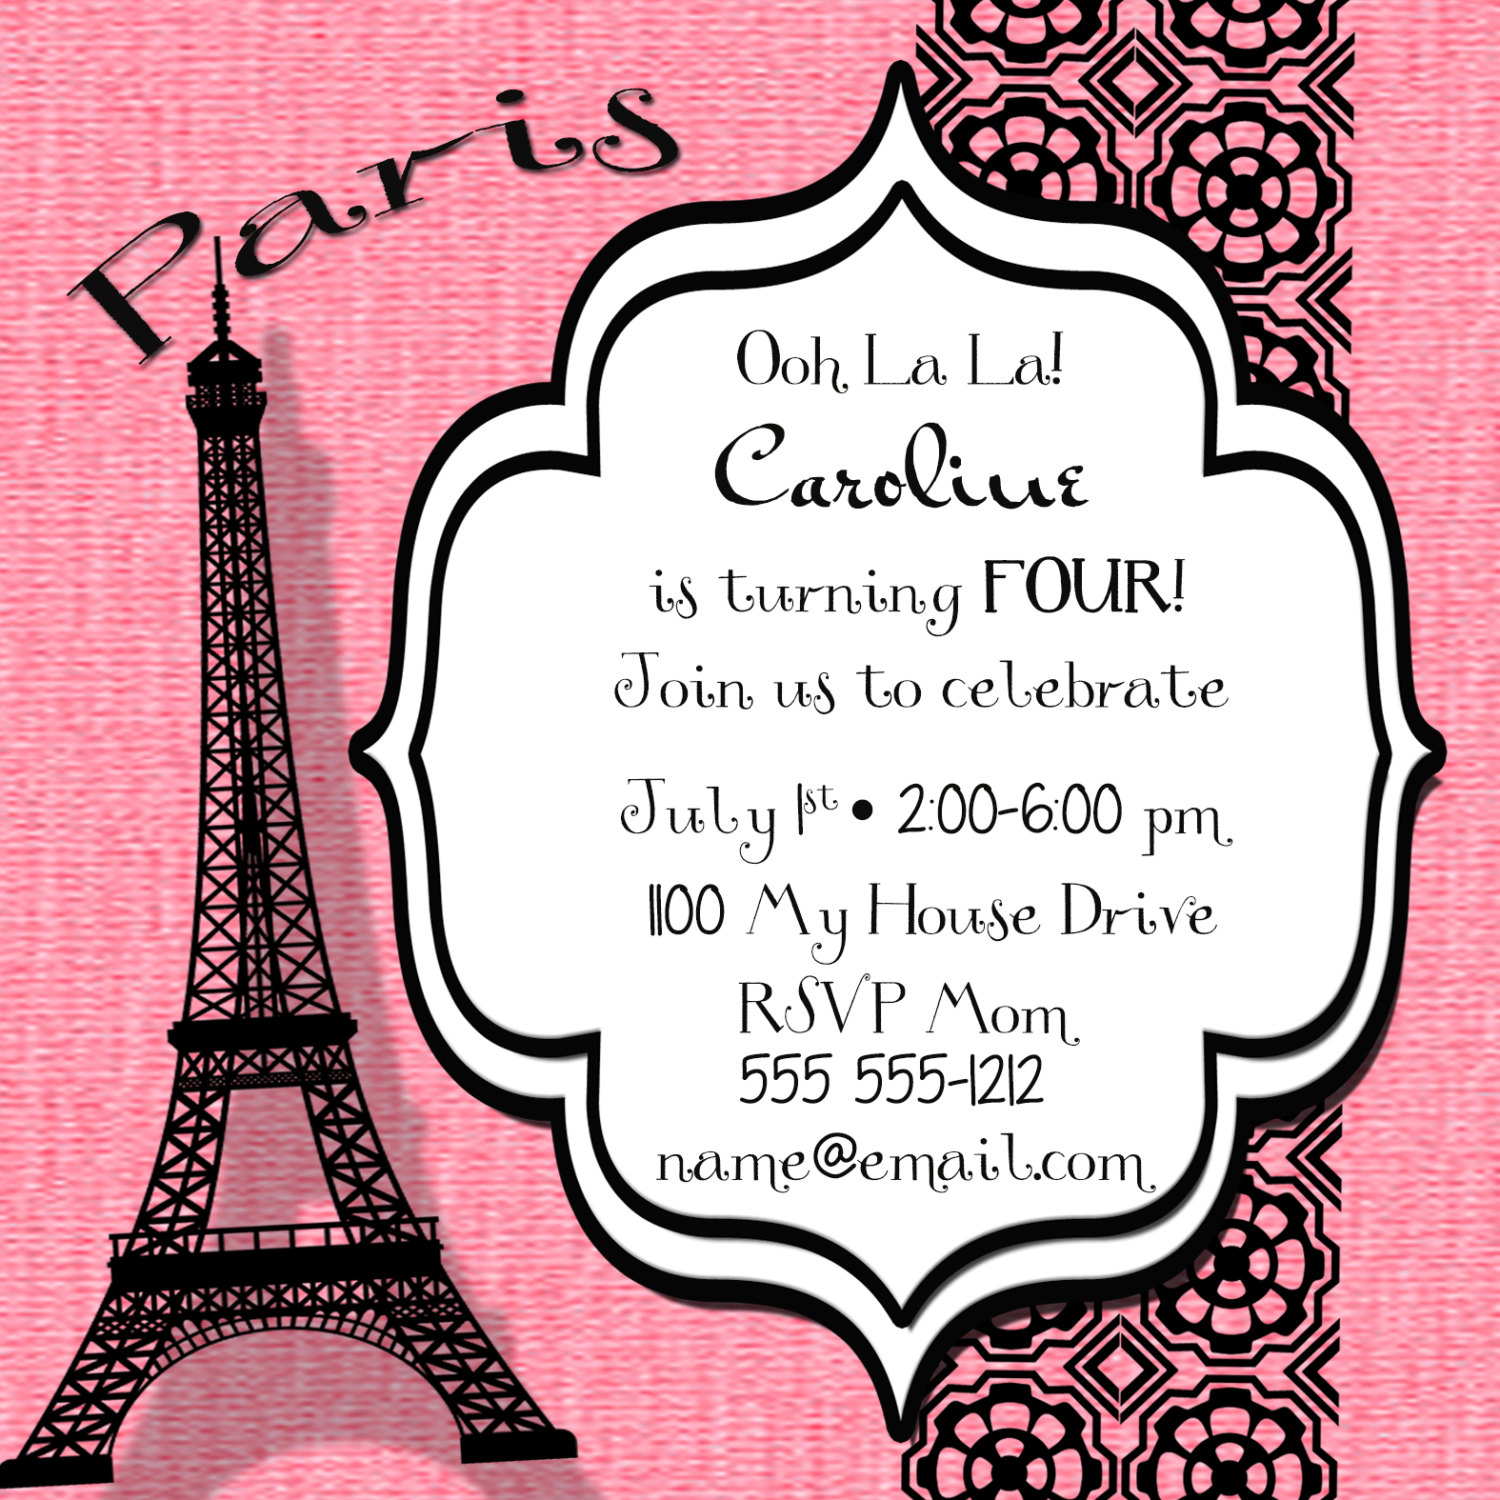 Paris eiffel tower personalized birthday invitation 1 sided paris eiffel tower personalized birthday invitation 1 sided birthday card party invitation french stopboris Gallery